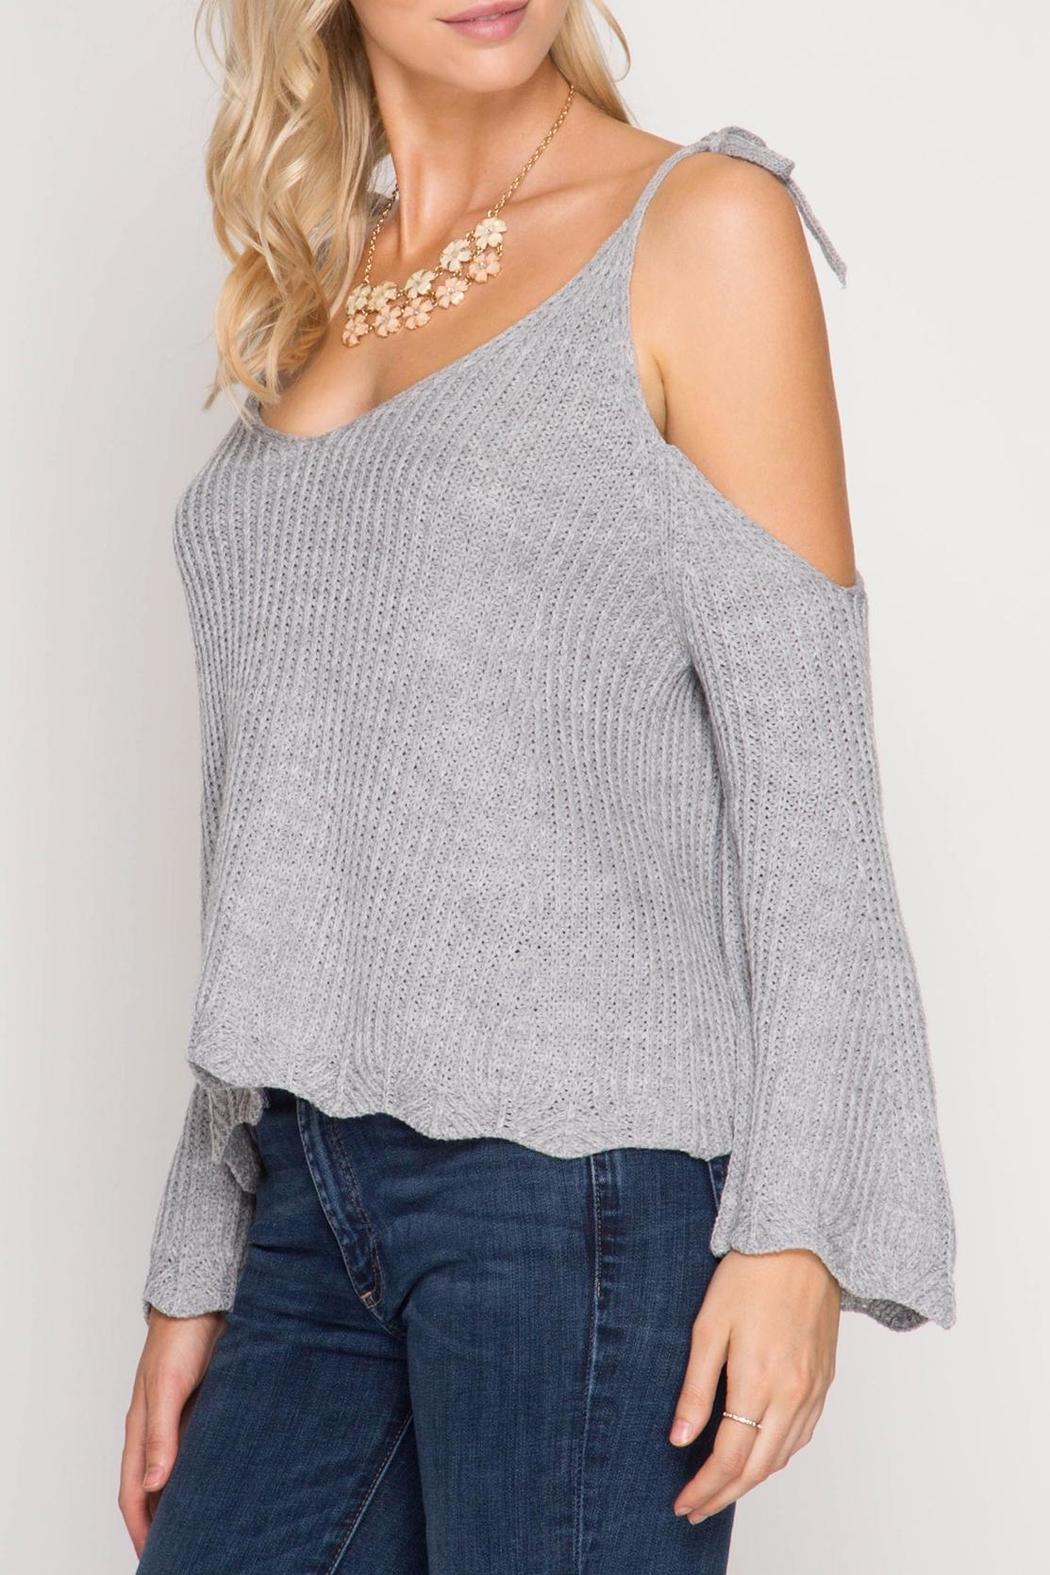 She + Sky Scallop Detail Sweater - Back Cropped Image